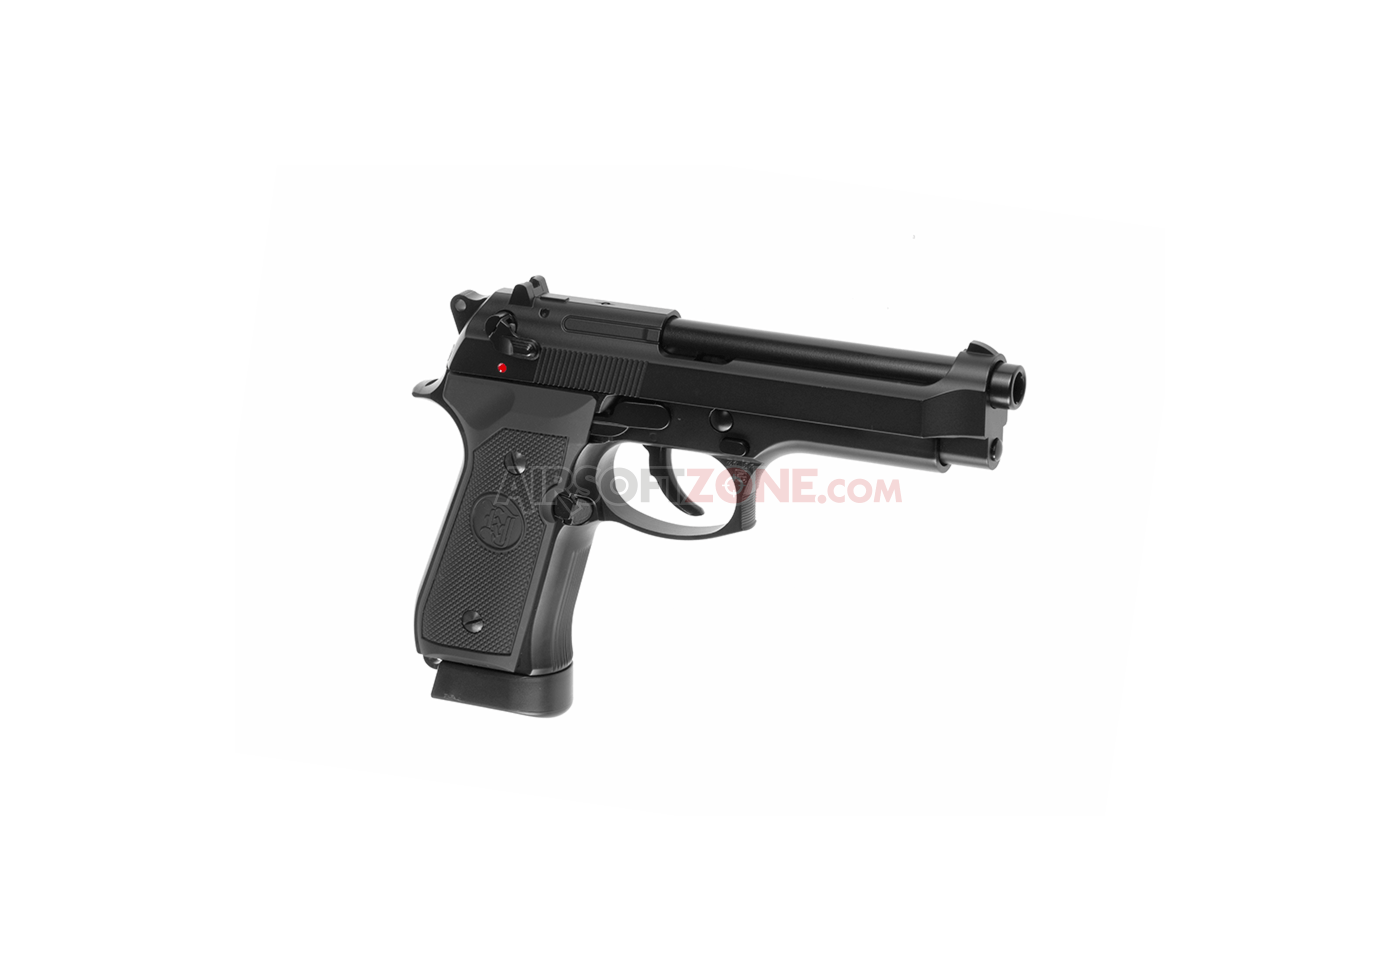 AIRSOFT KJ Works Ressort de pompe type M9